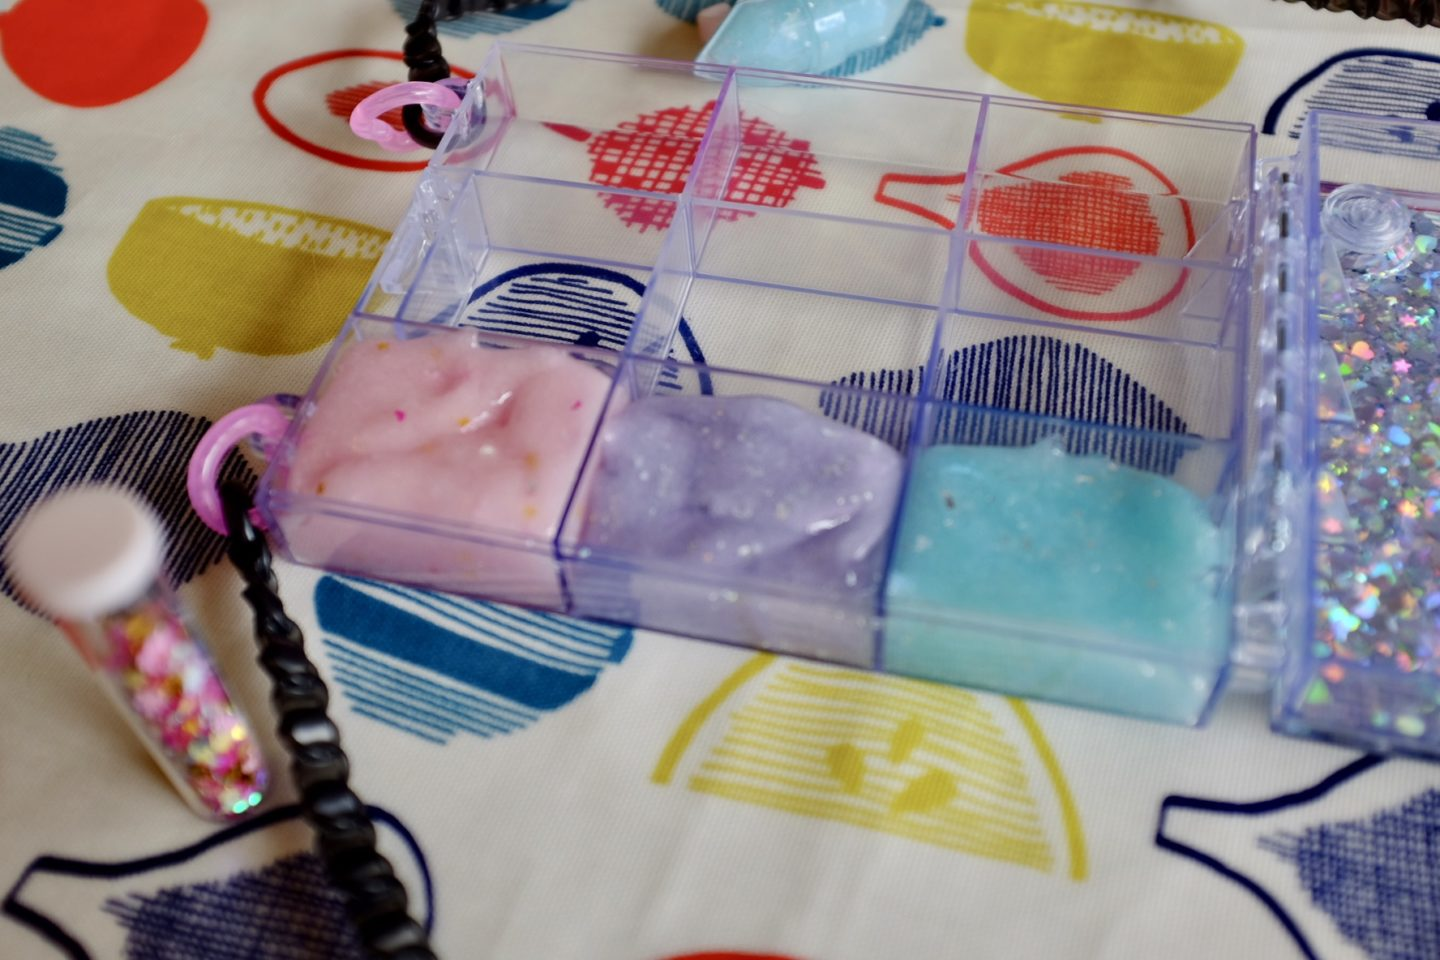 adding slime to the purse from the glam goo deluxe kit slime